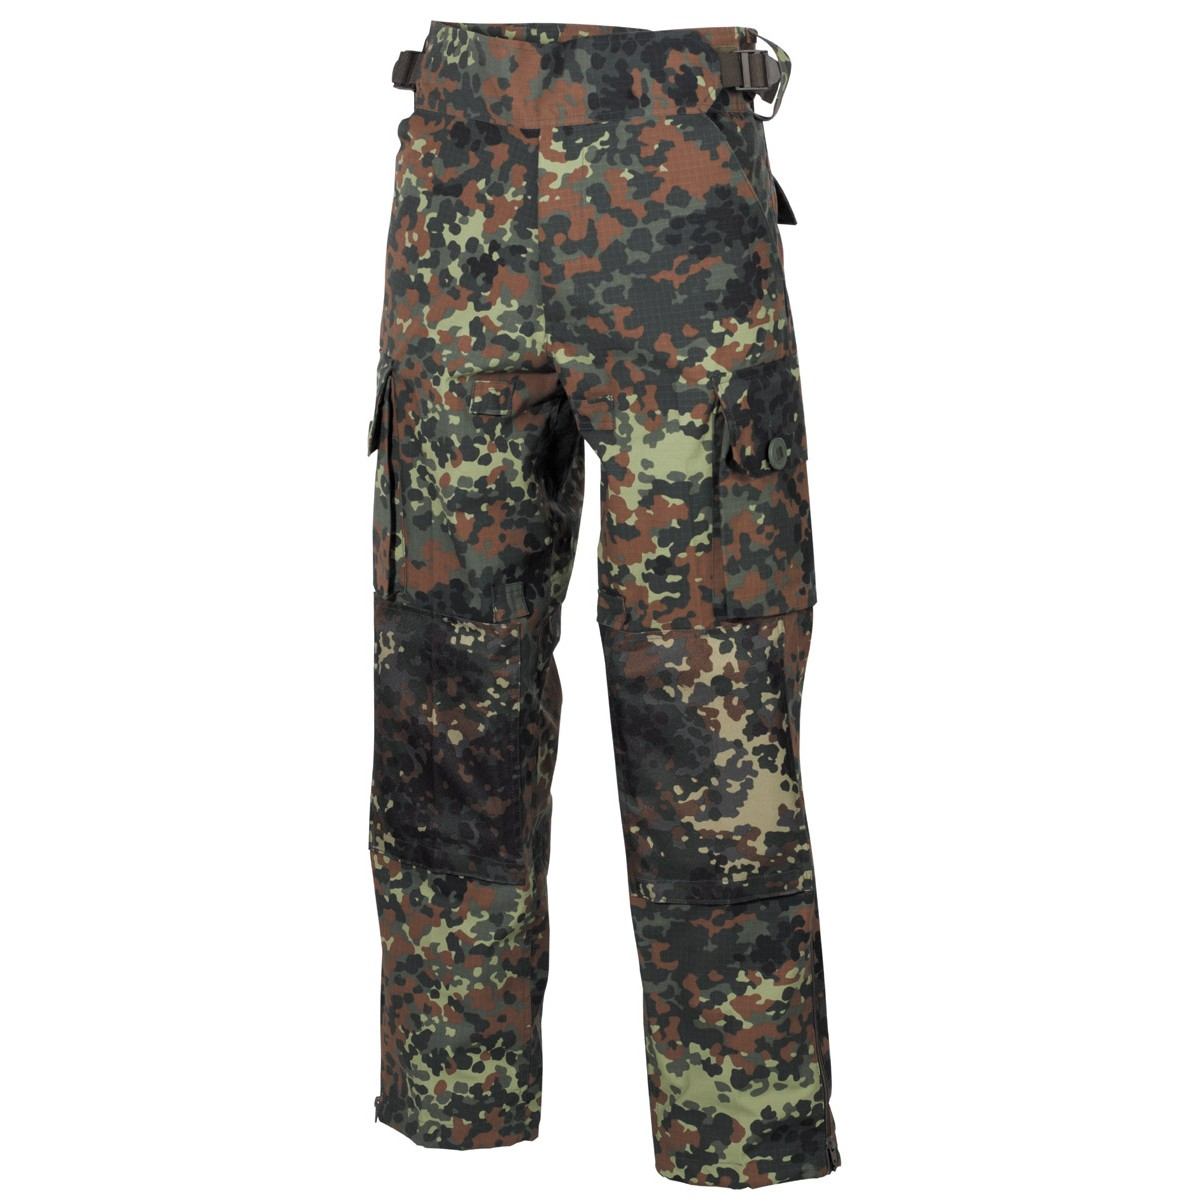 Premium Tactical Military Battle Trousers COMMANDOS - BW German Army Camo